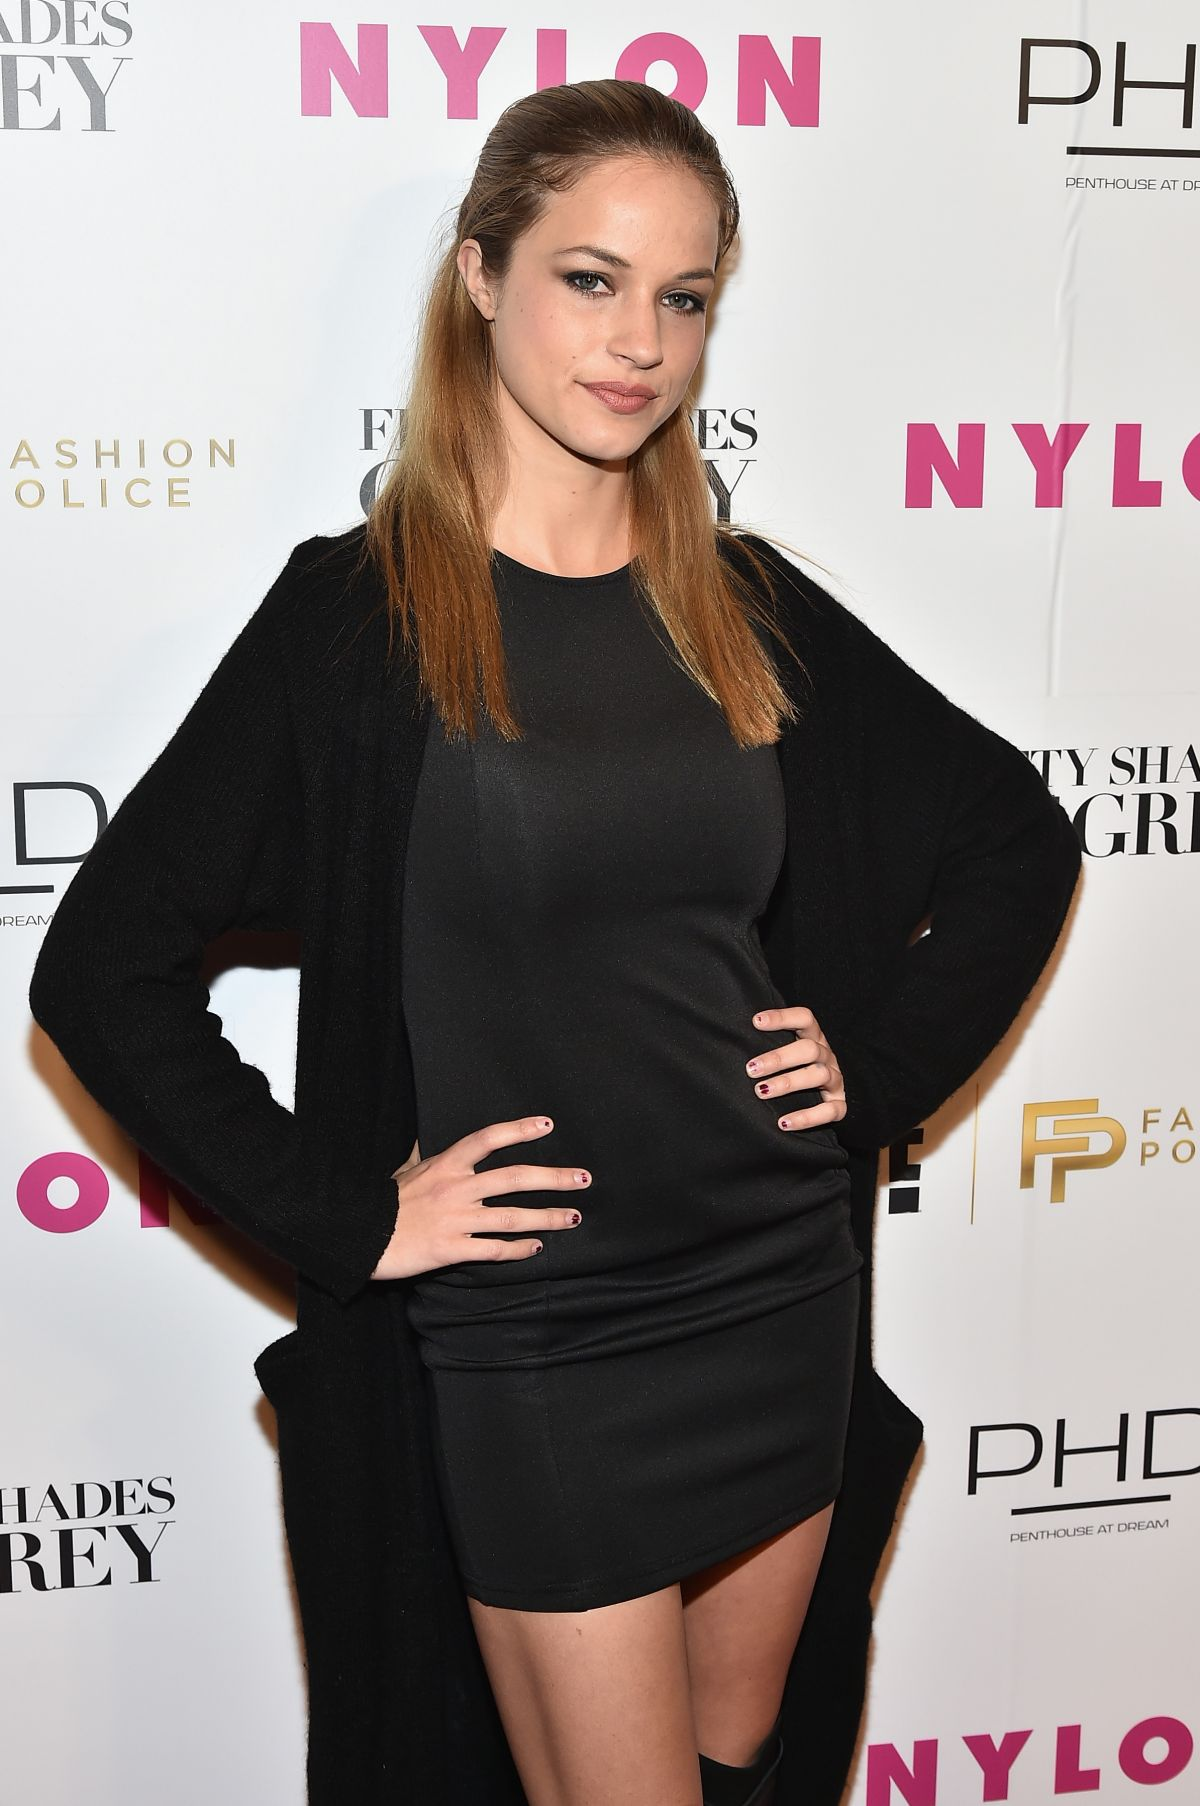 ALEXIS KNAPP at NY Fashion Week Kickoff with Fifty Shades of Fashion Event in New York